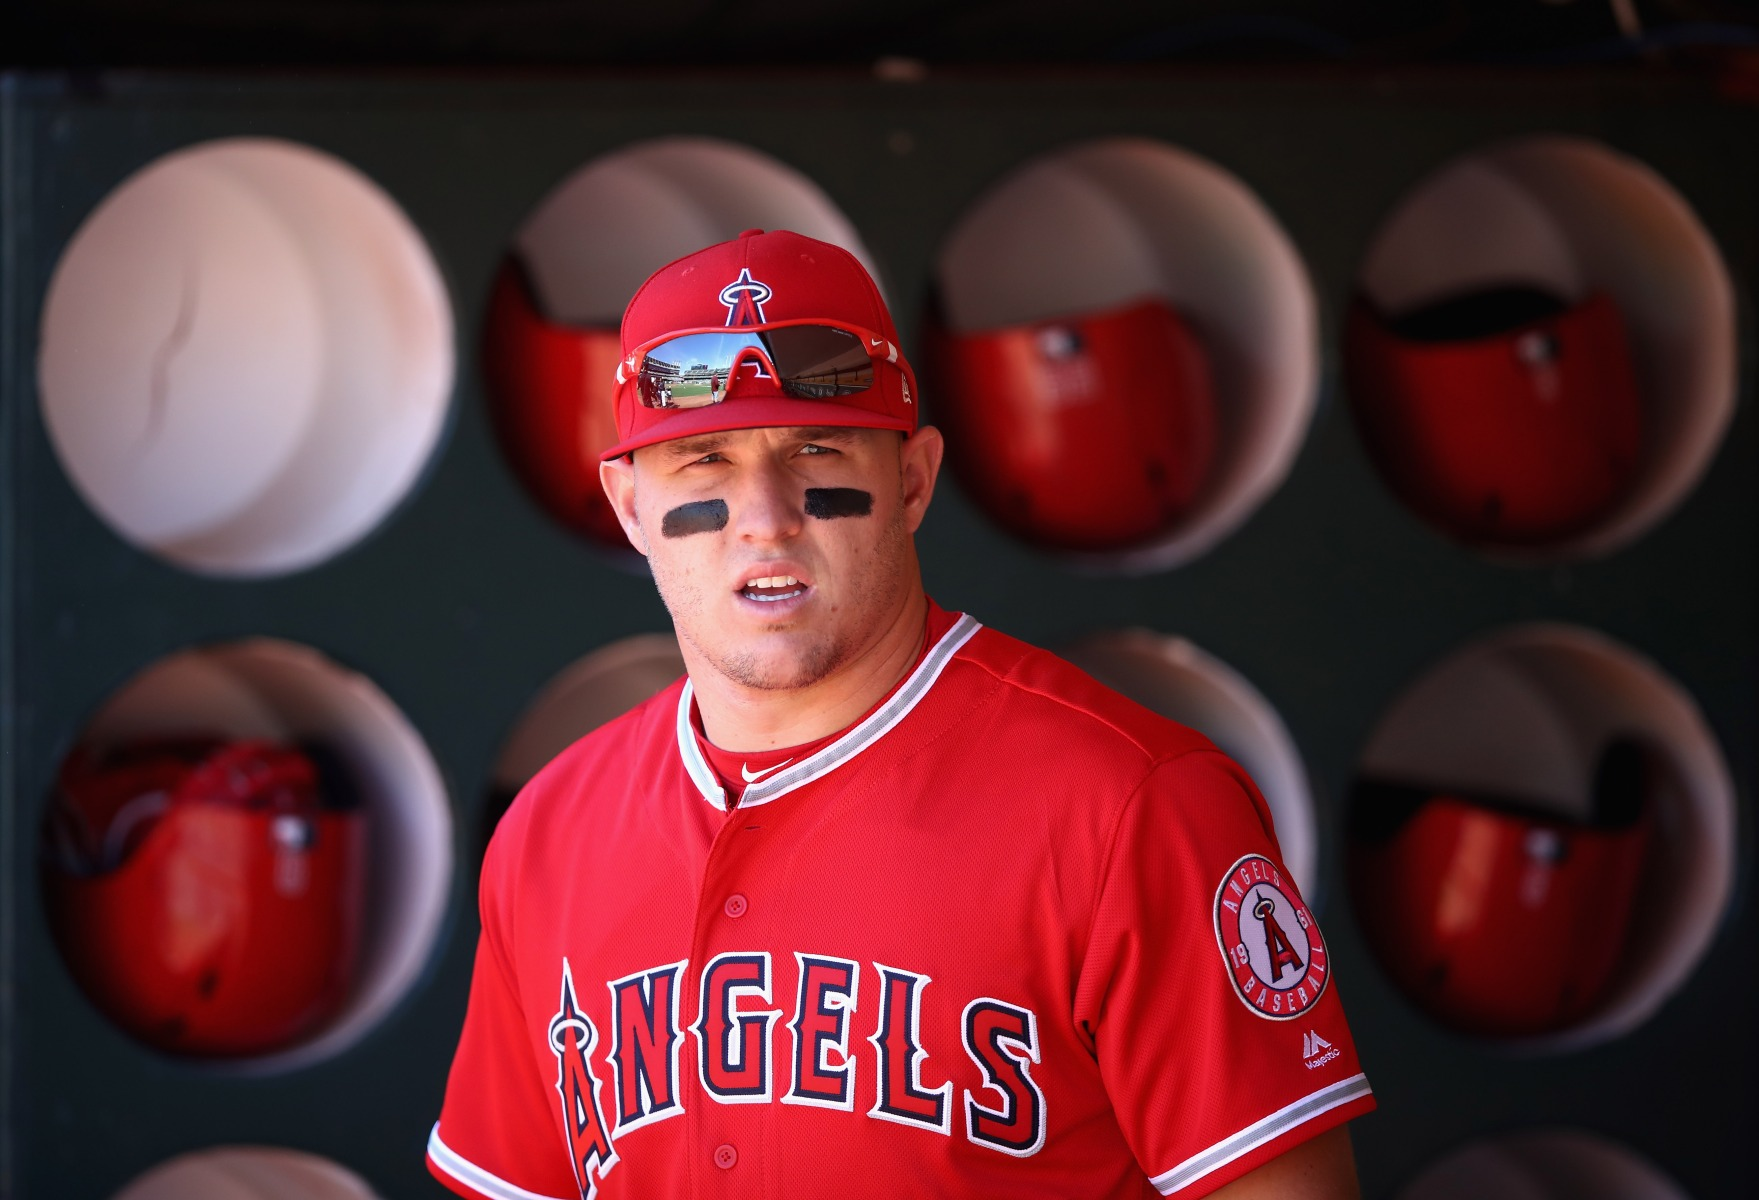 Mike Trout #27 of the Los Angeles Angels stands in the dugout before their game against the Oakland Athletics at Oakland Alameda Coliseum on March 29, 2018 in Oakland, California.  (Photo by Ezra Shaw/Getty Images)